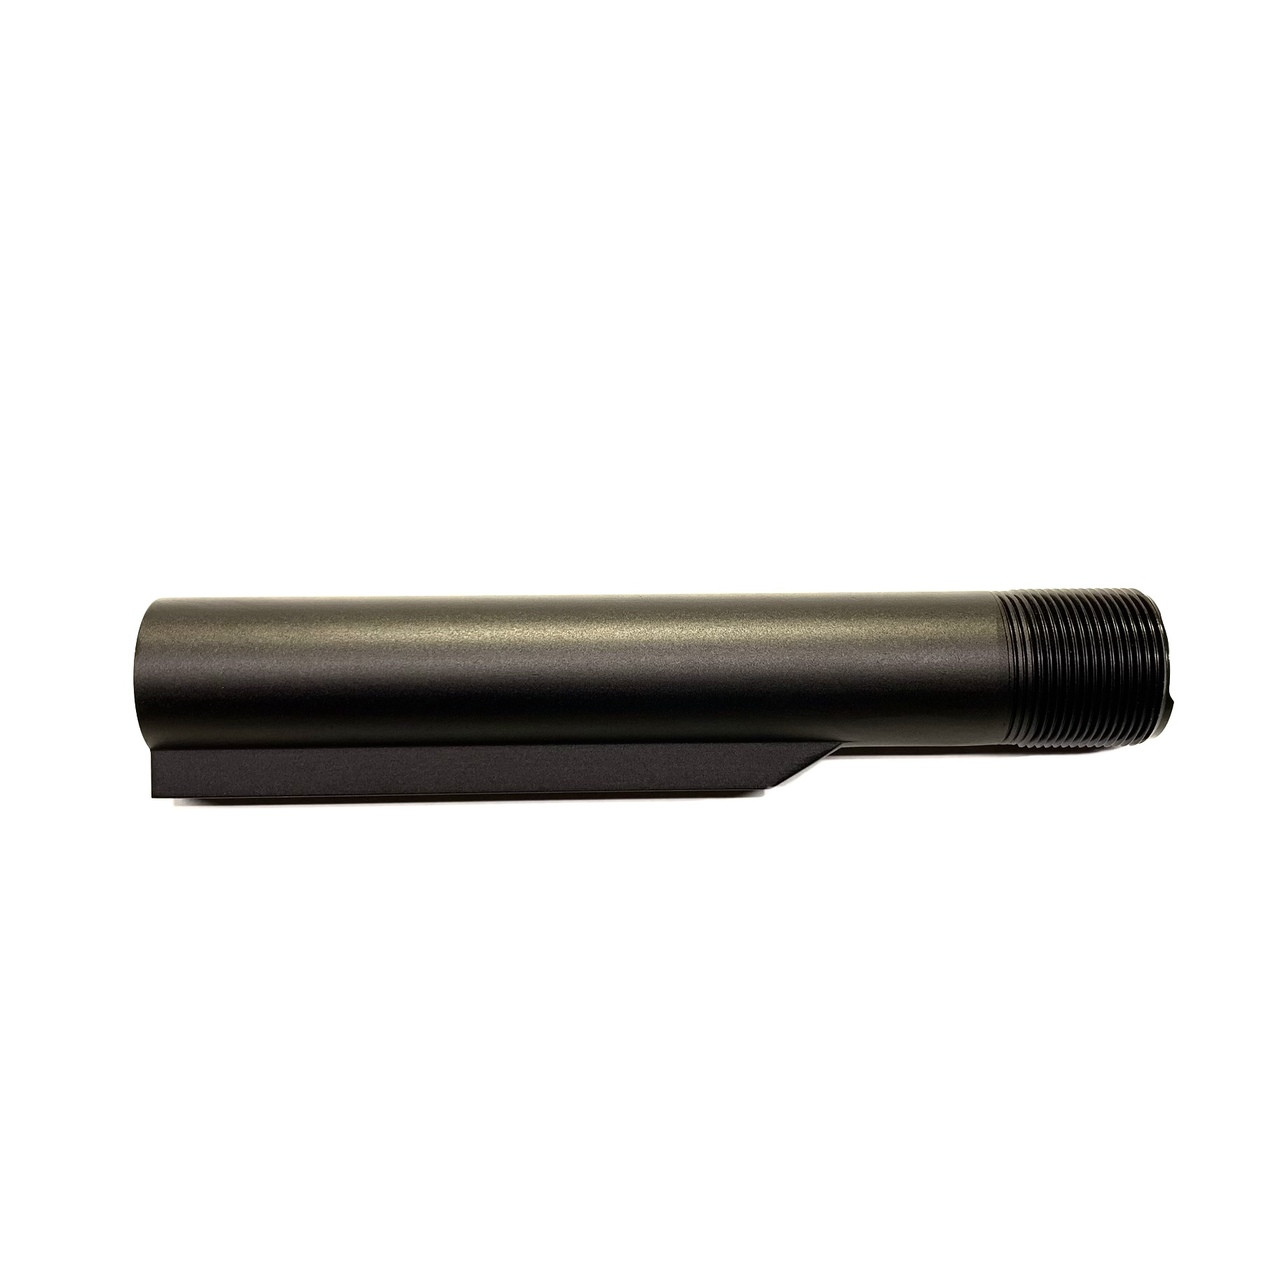 Carbine Buffer Tube - MilSpec Size